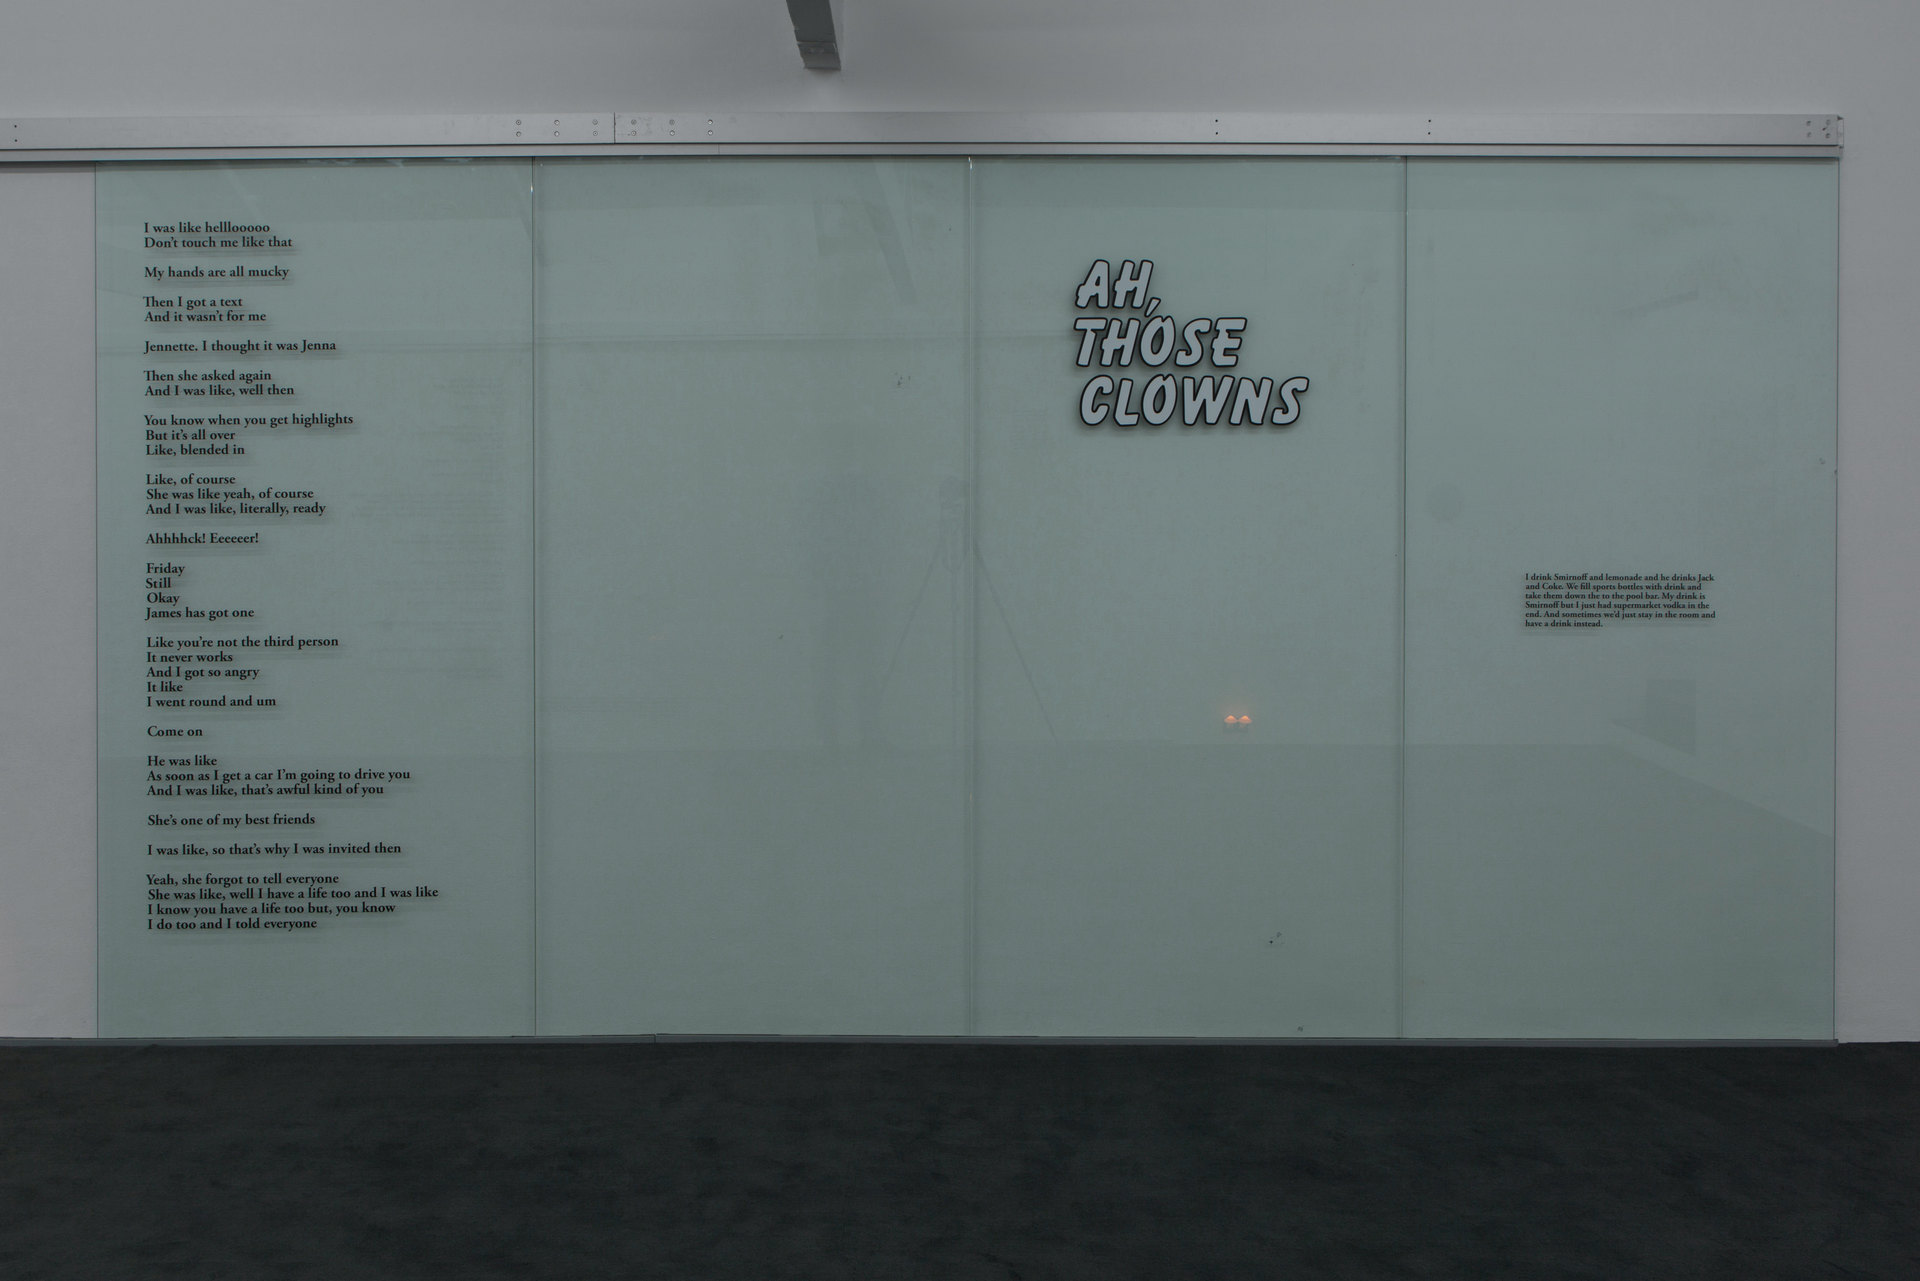 Vectors / Lovers Writs / Sticks / Ours and Mine, 2016, Ghislaine Leung, Cell Project Space